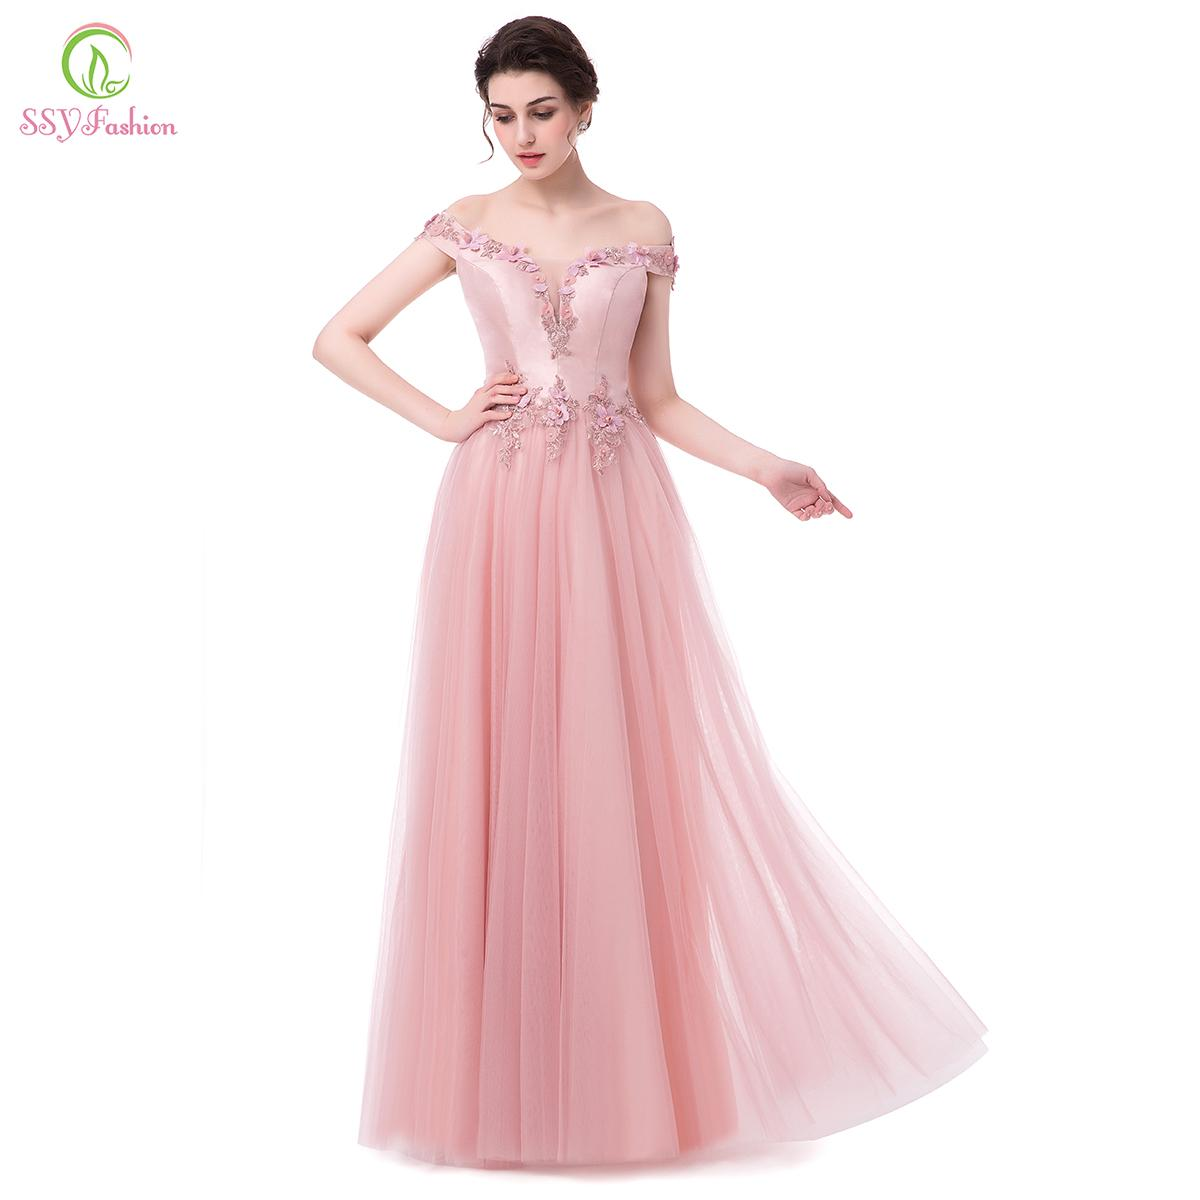 Ssyfashion New Flower Girl Dresses For Wedding Sweet Pink Lace Appliques With Beading Sleeveless Short Children Party Gowns Weddings & Events